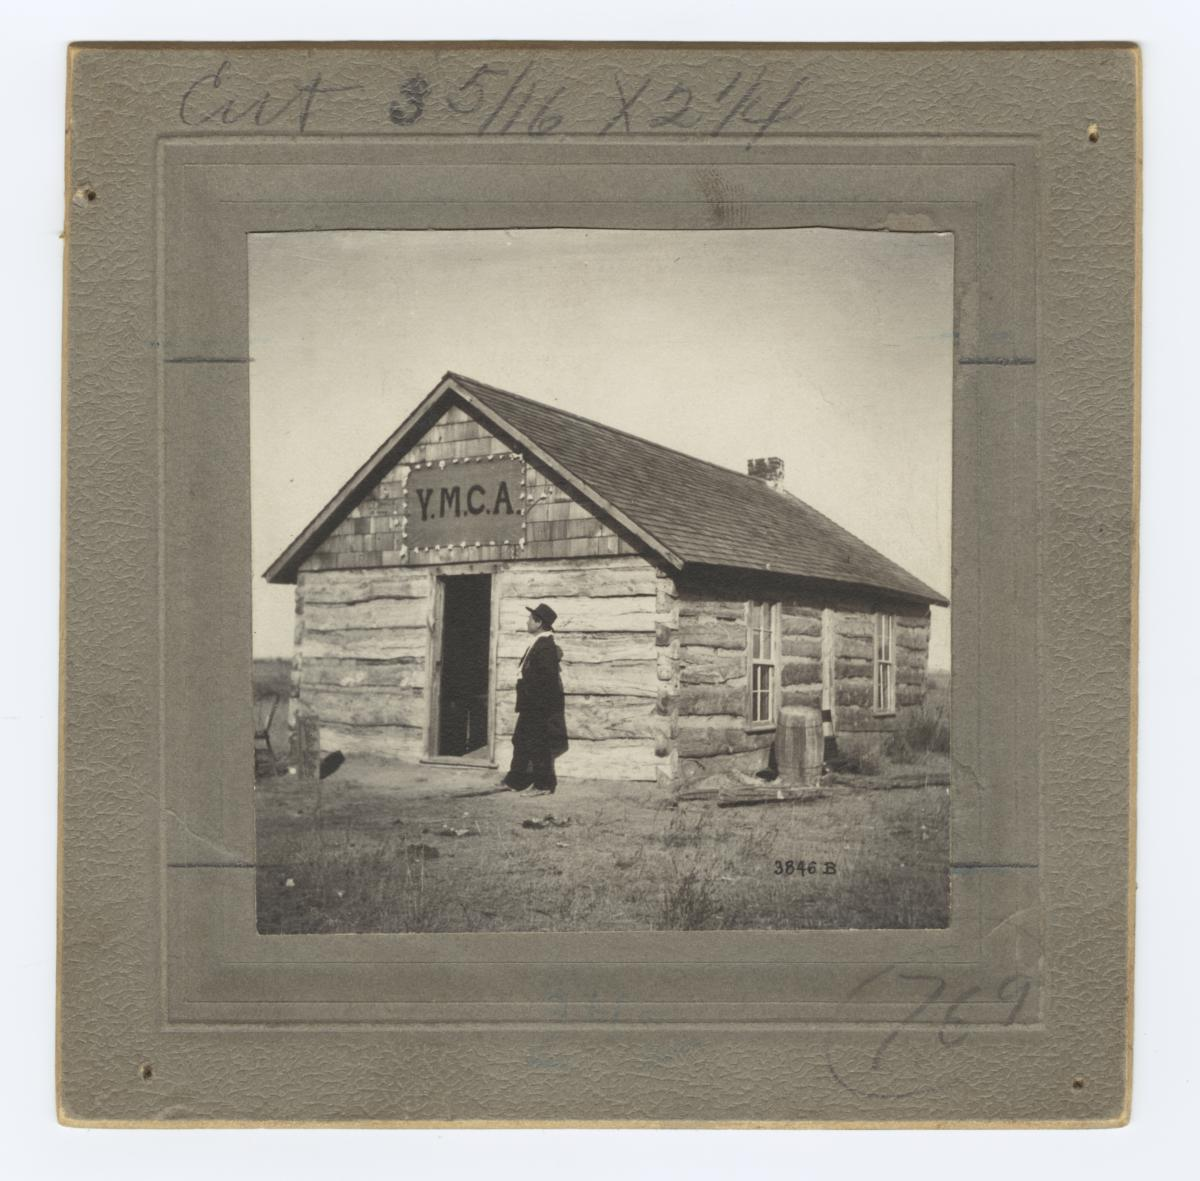 Man Standing in front of the Y.M.C.A. Building on Pine Ridge Reservation, South Dakota